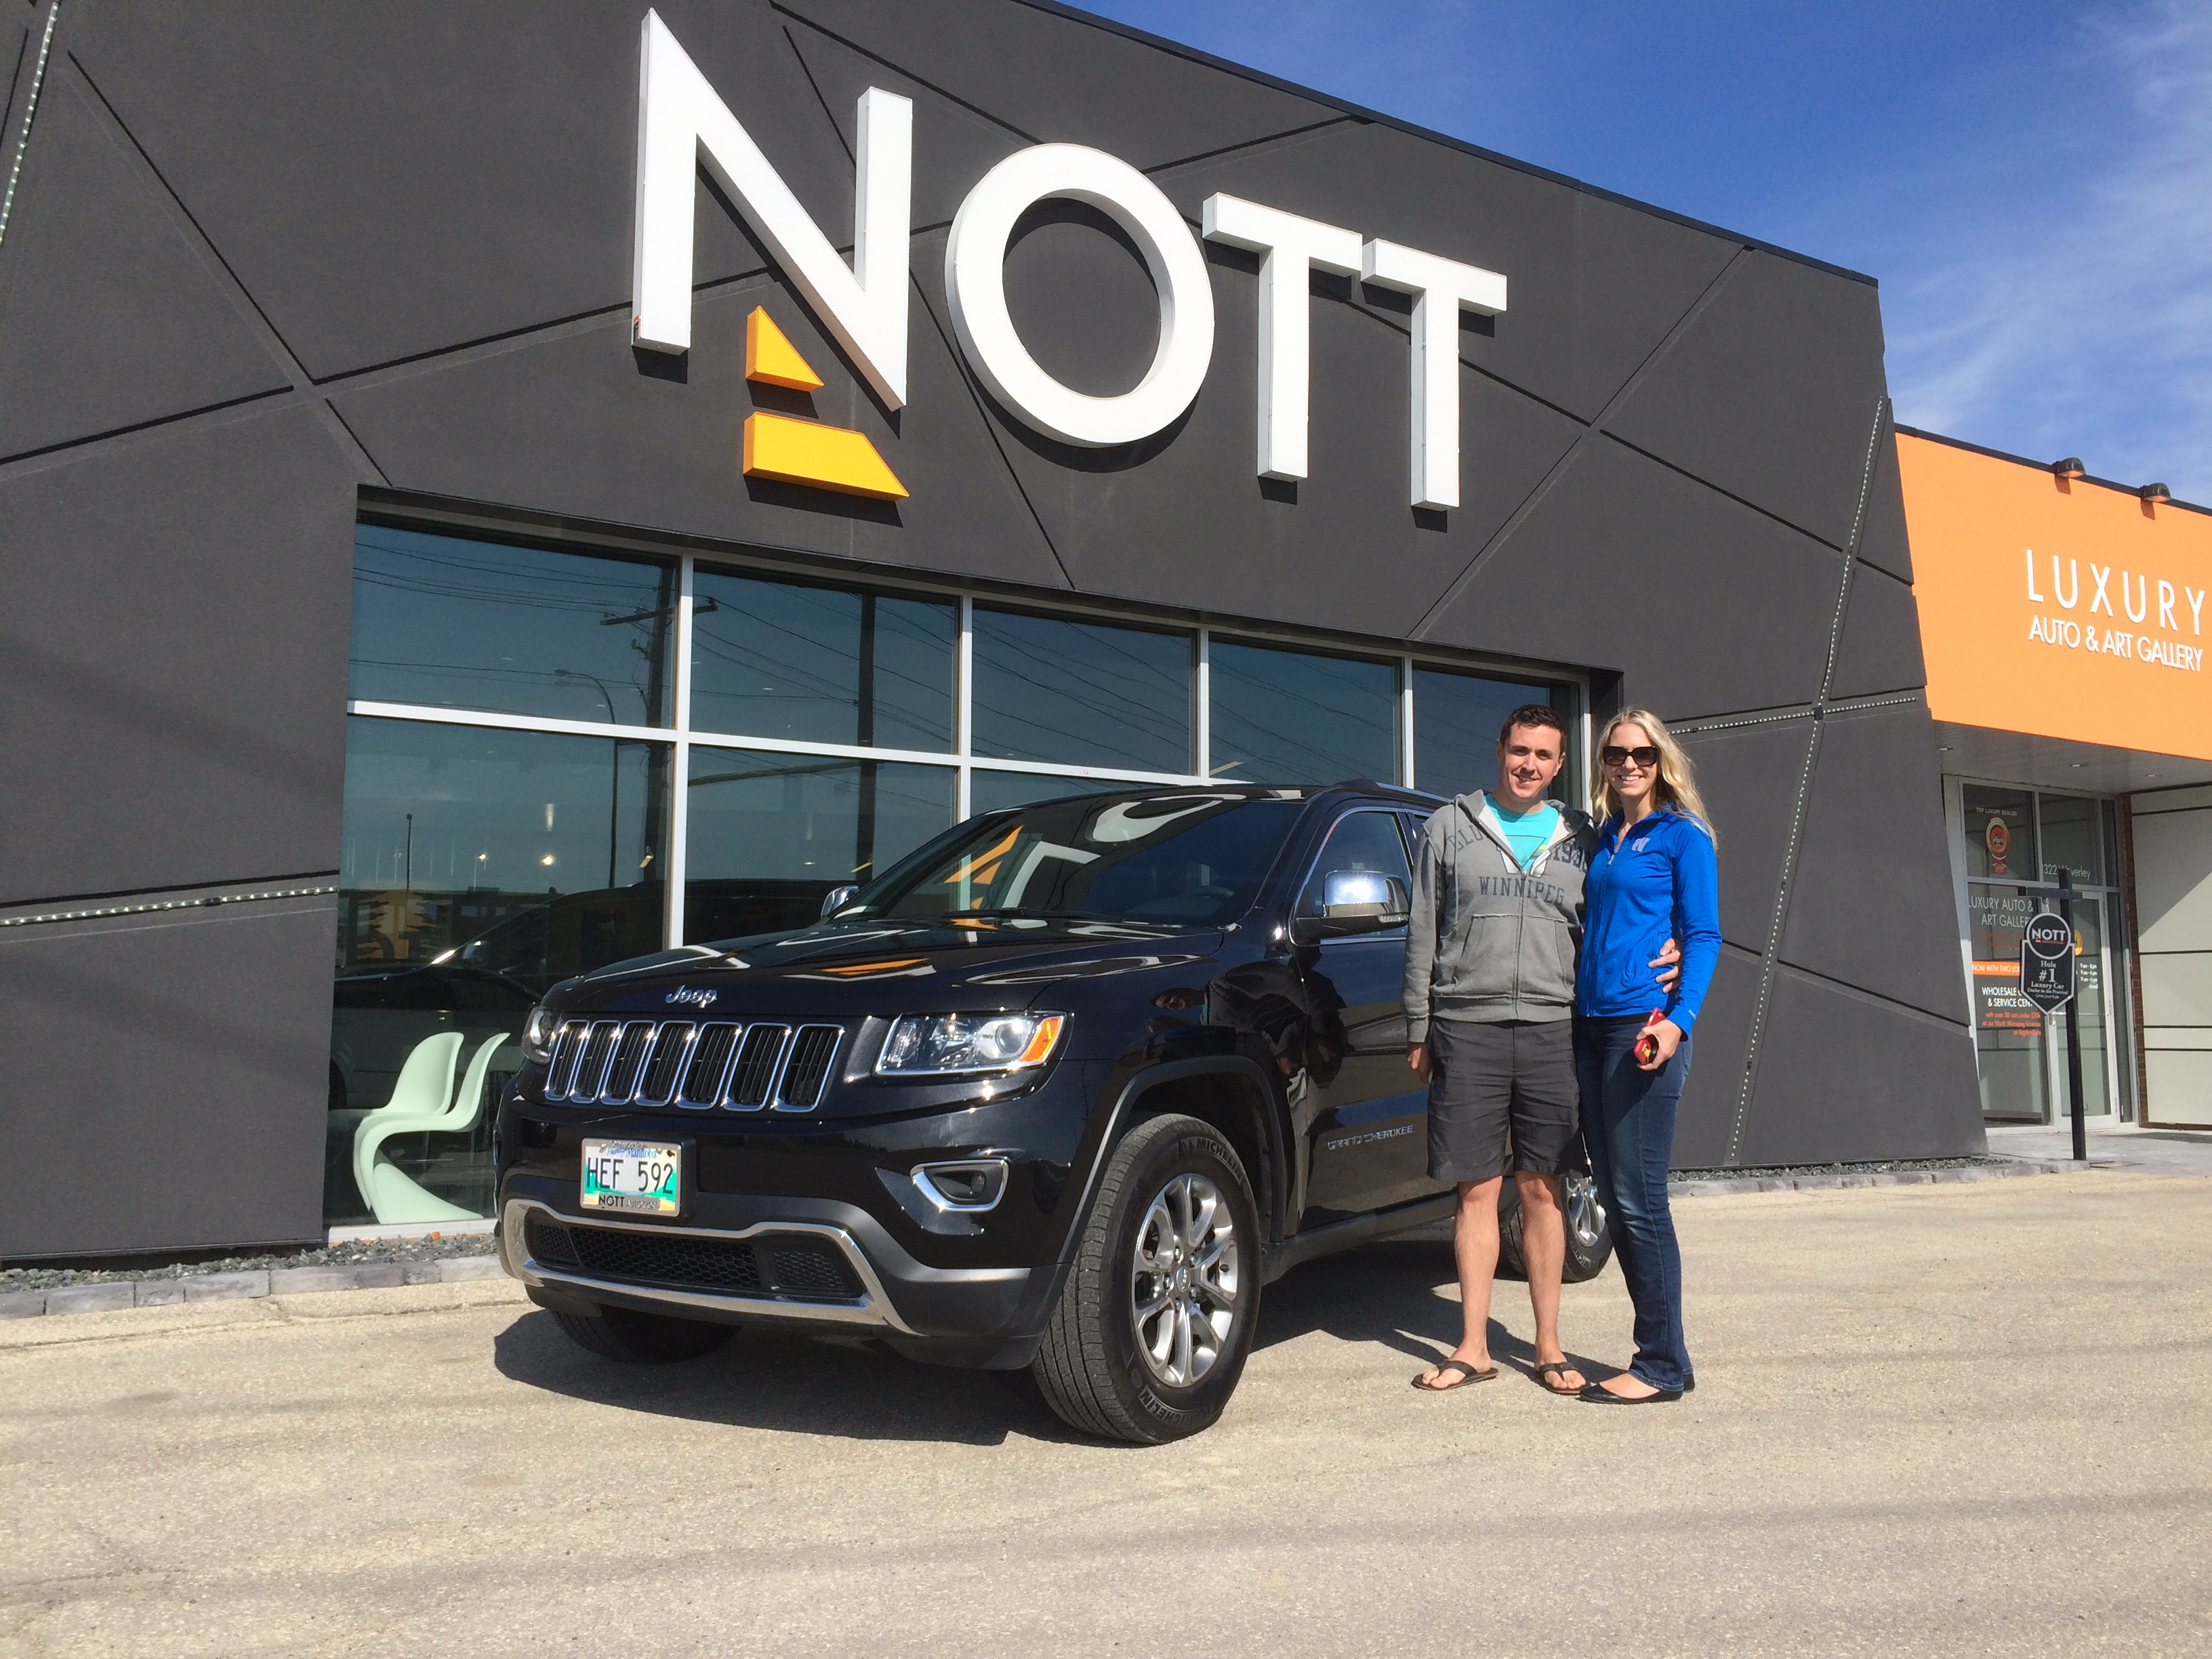 20150530_4404_2014_Jeep_Grand_Cherokee_Hannah_Pratt_James